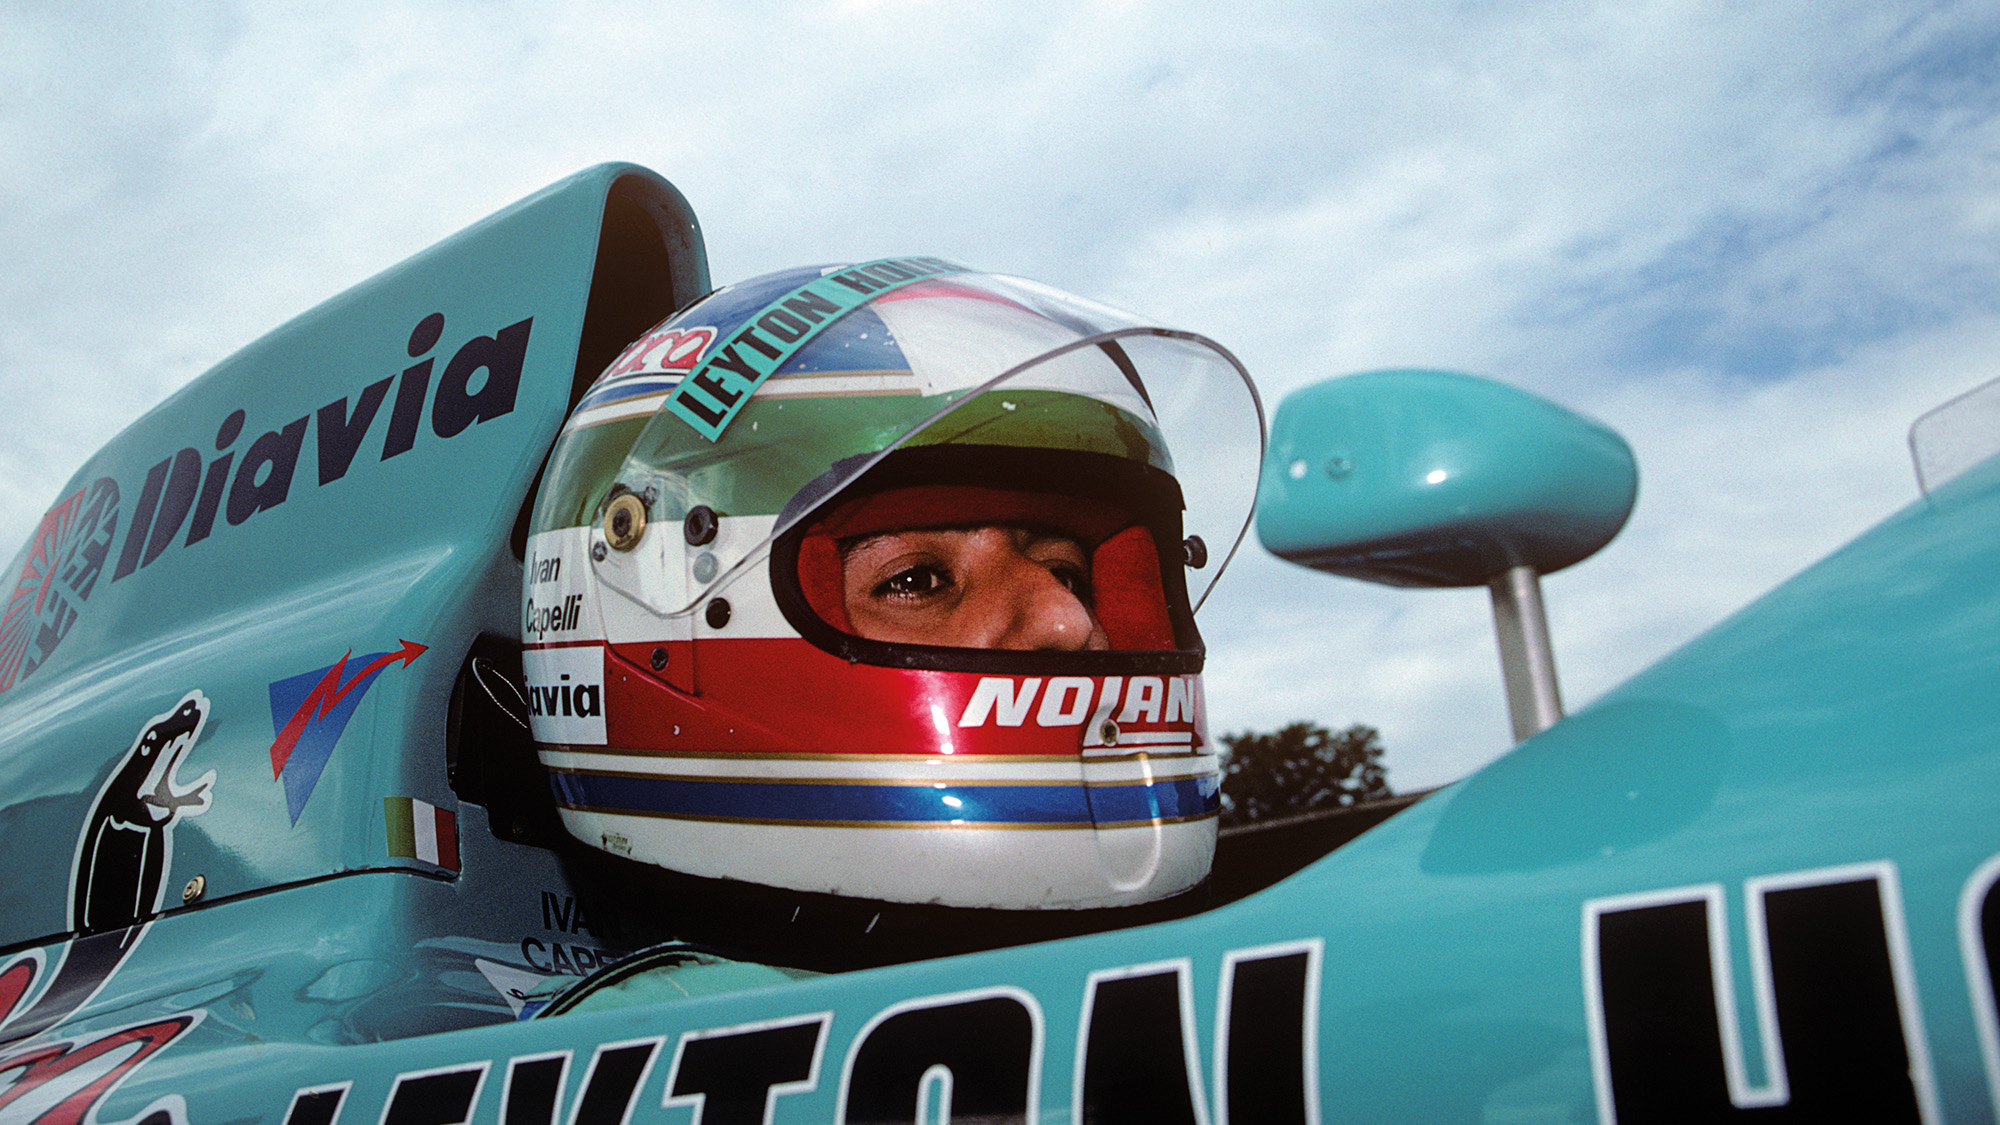 Ivan Capelli in his Leyton House March at the 1988 Belgian Grand Prix